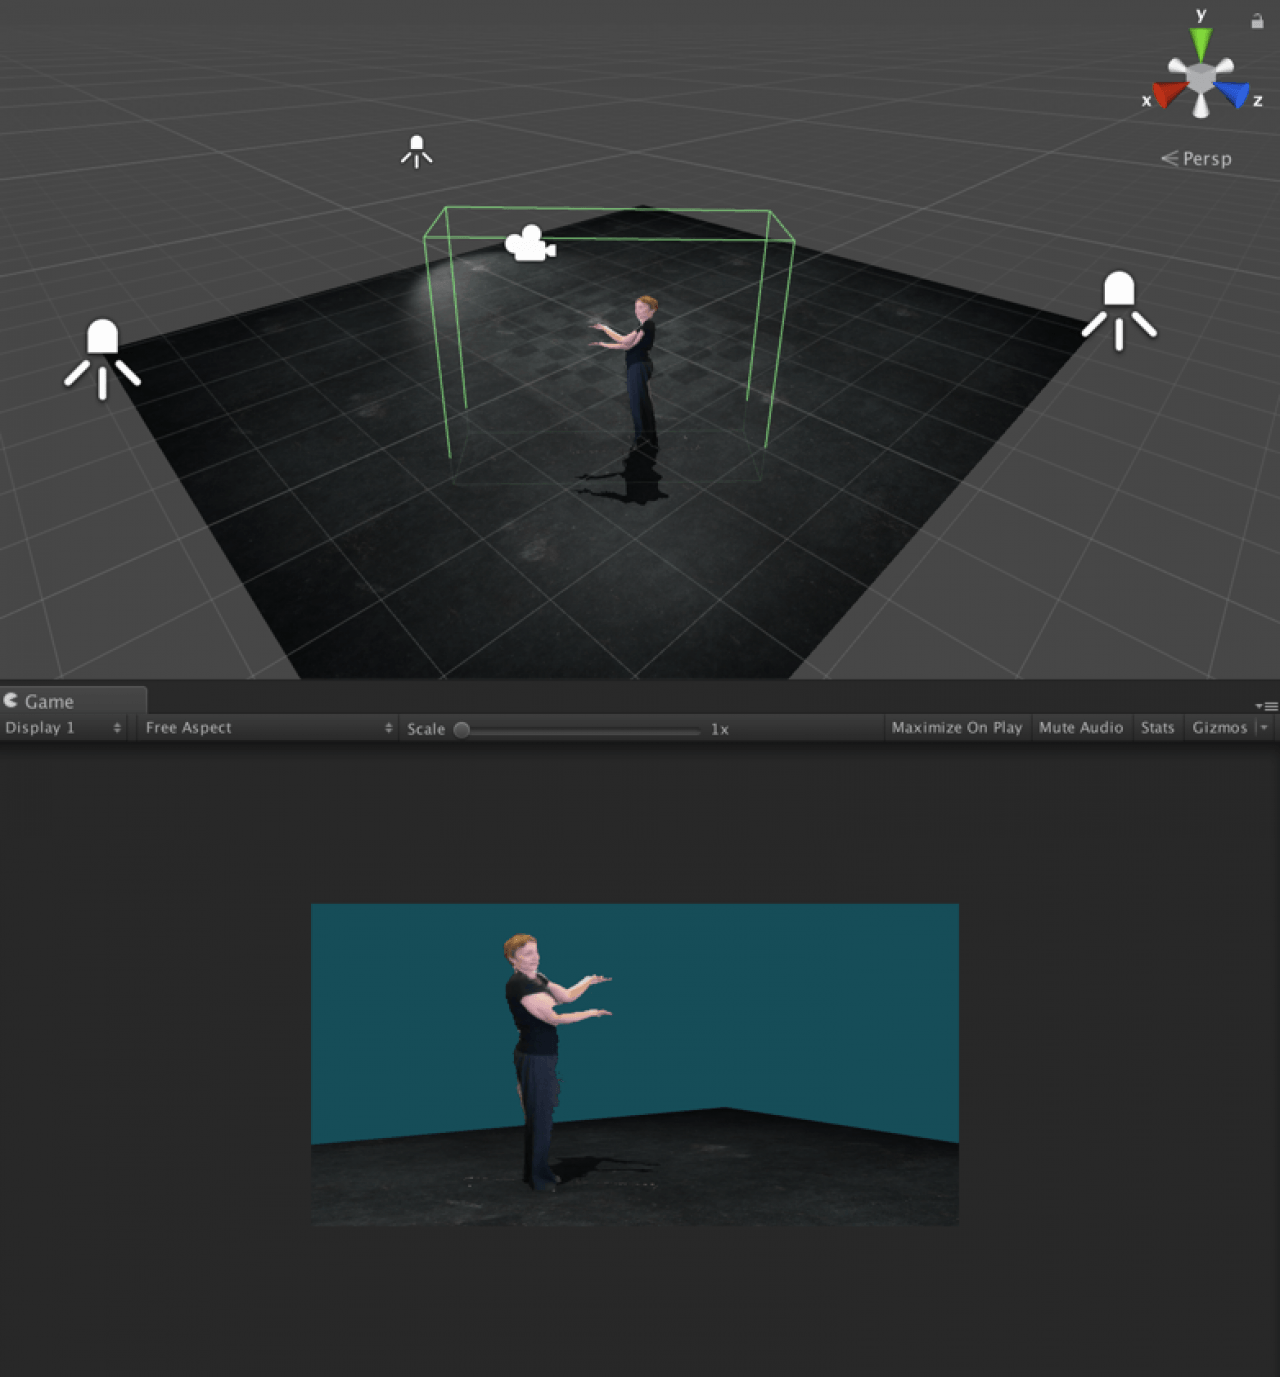 Image prototype using volumetric capture: two views from different angles of a figure standing in a rectangular prism